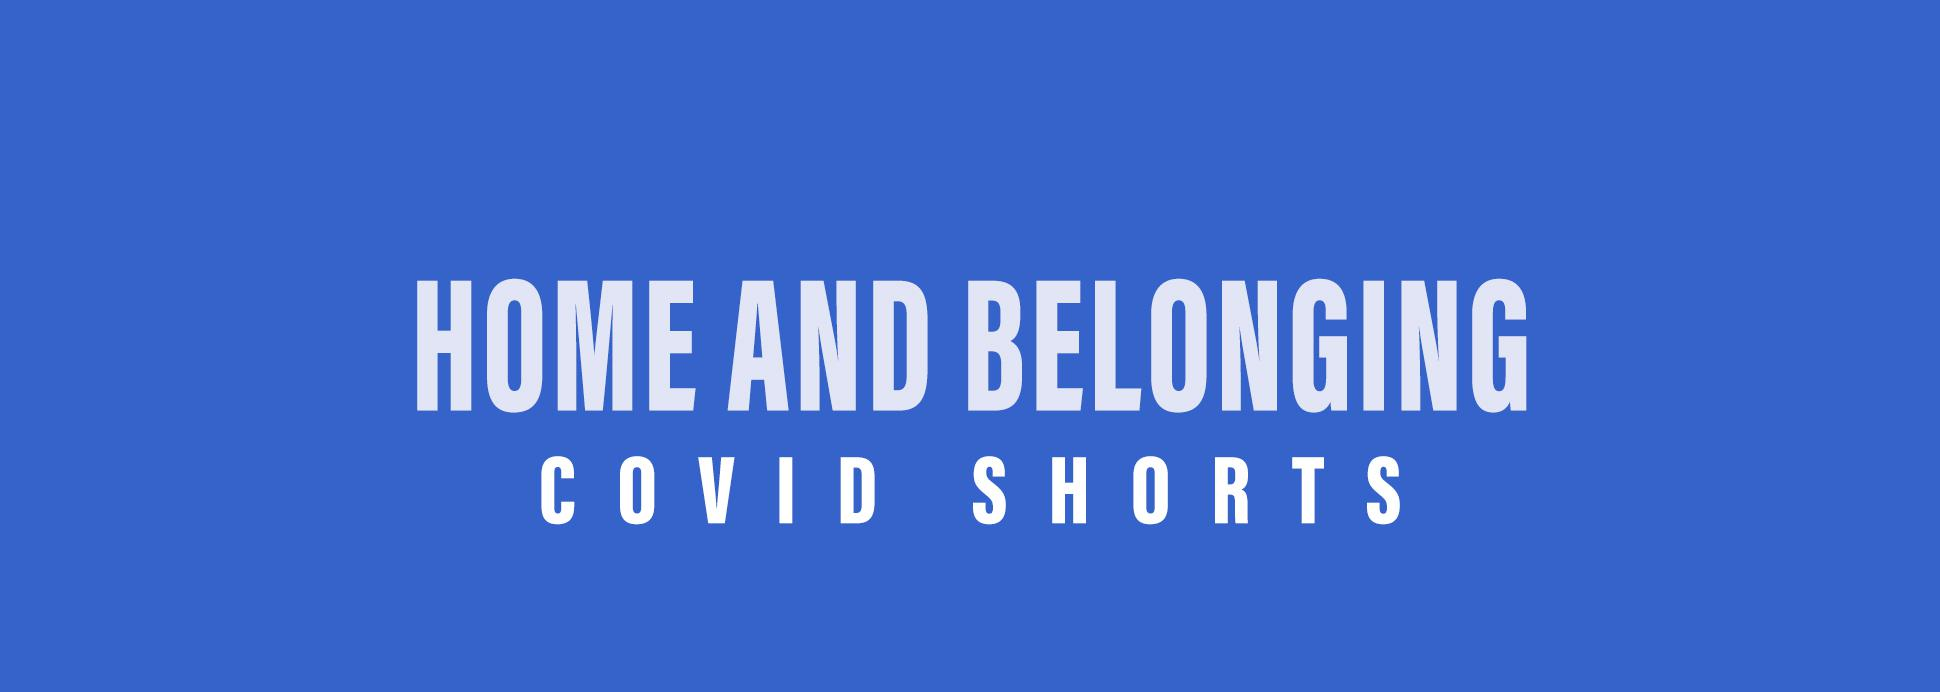 Shorts: COVID Home and Belonging